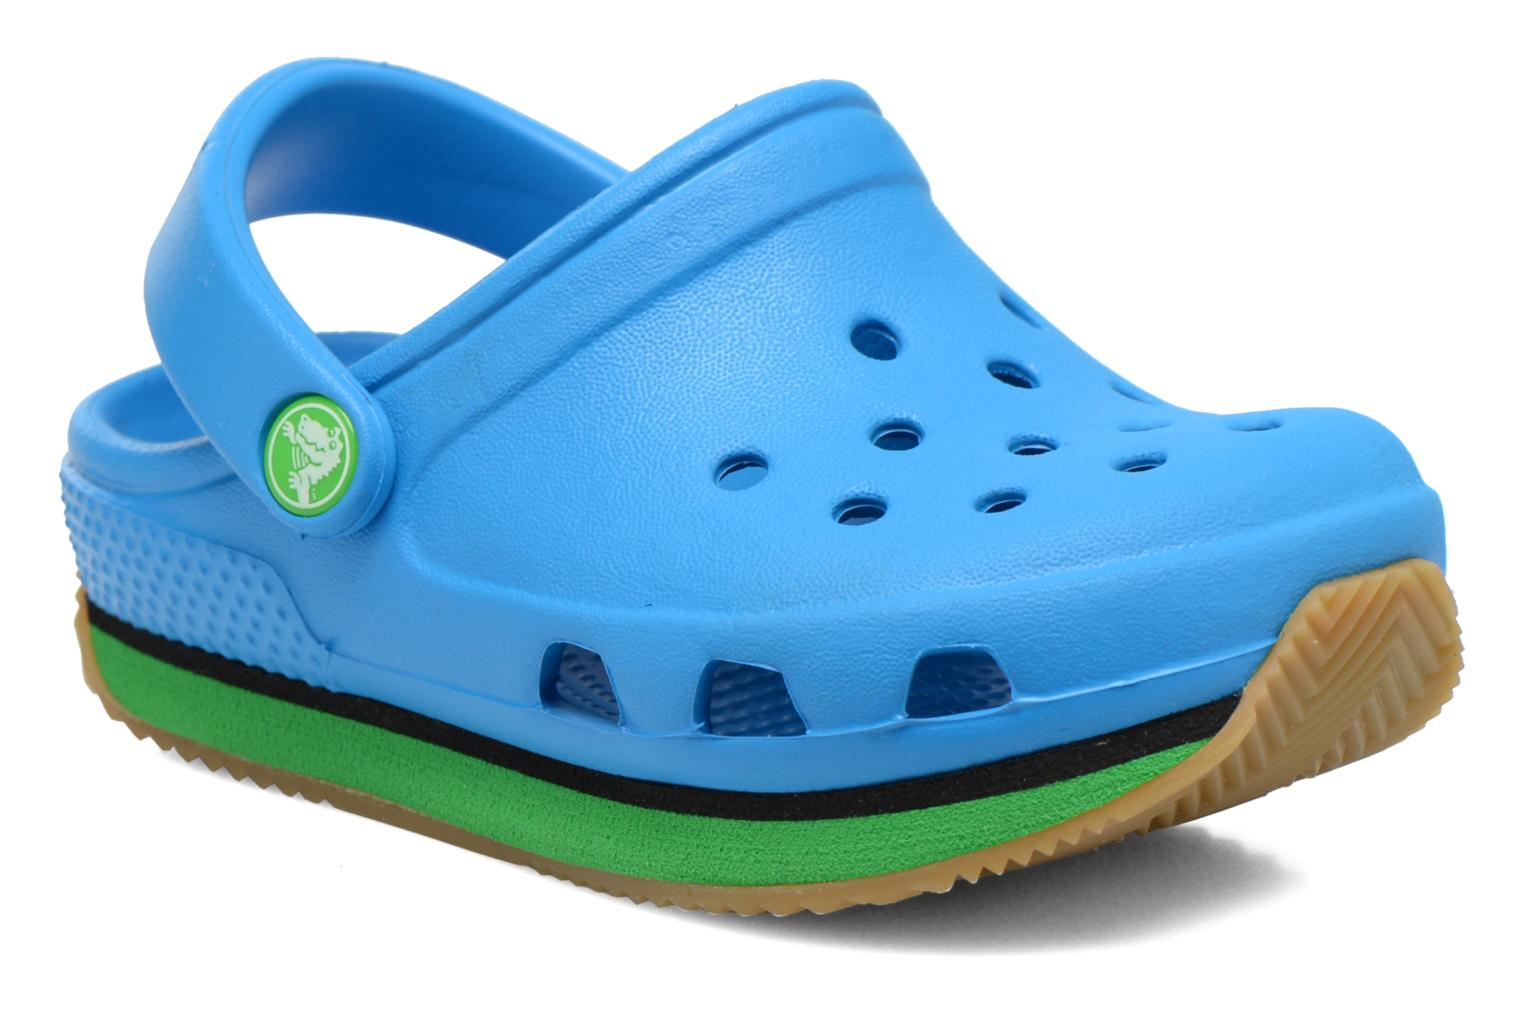 Cros Retro Clog Kids Ocean/Grass Green